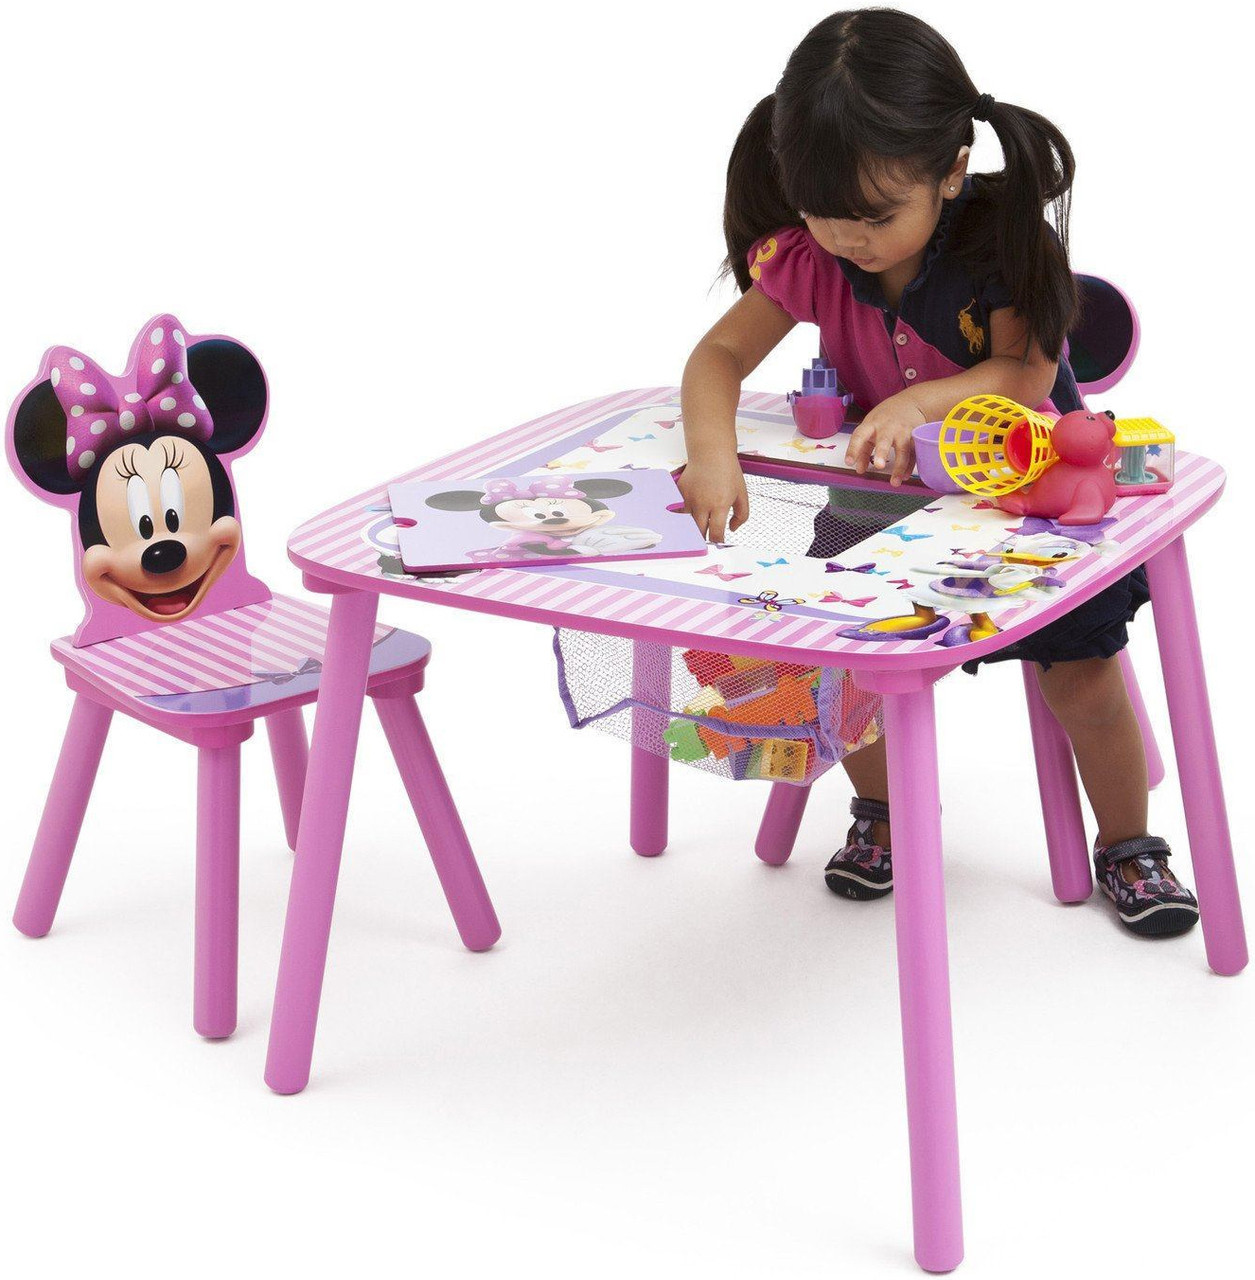 Peachy Minnie Mouse Table Chair Set With Storage Pdpeps Interior Chair Design Pdpepsorg